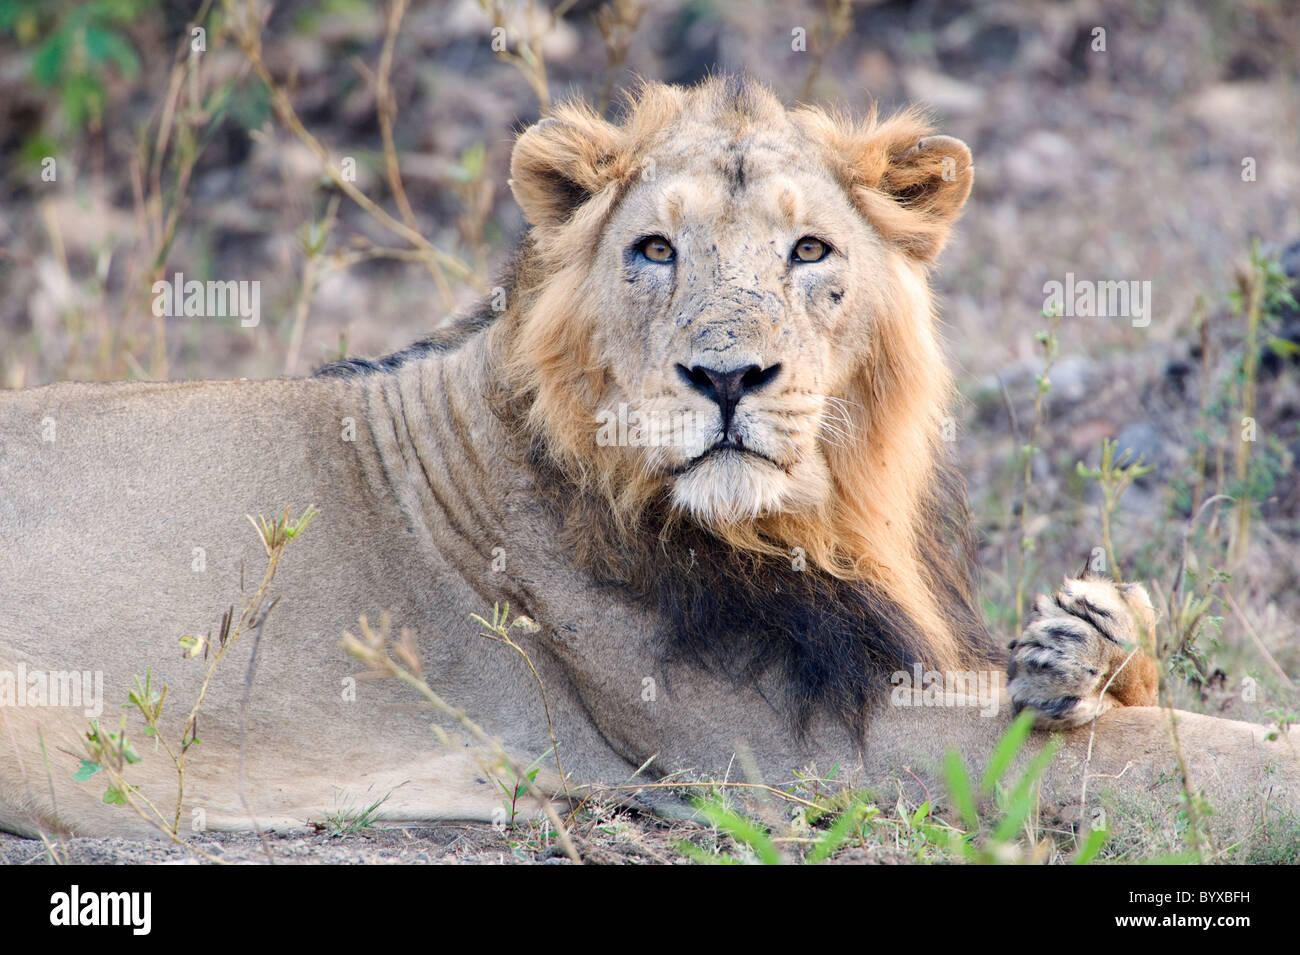 Asiatic Lion Panthera leo persica India - Stock Image